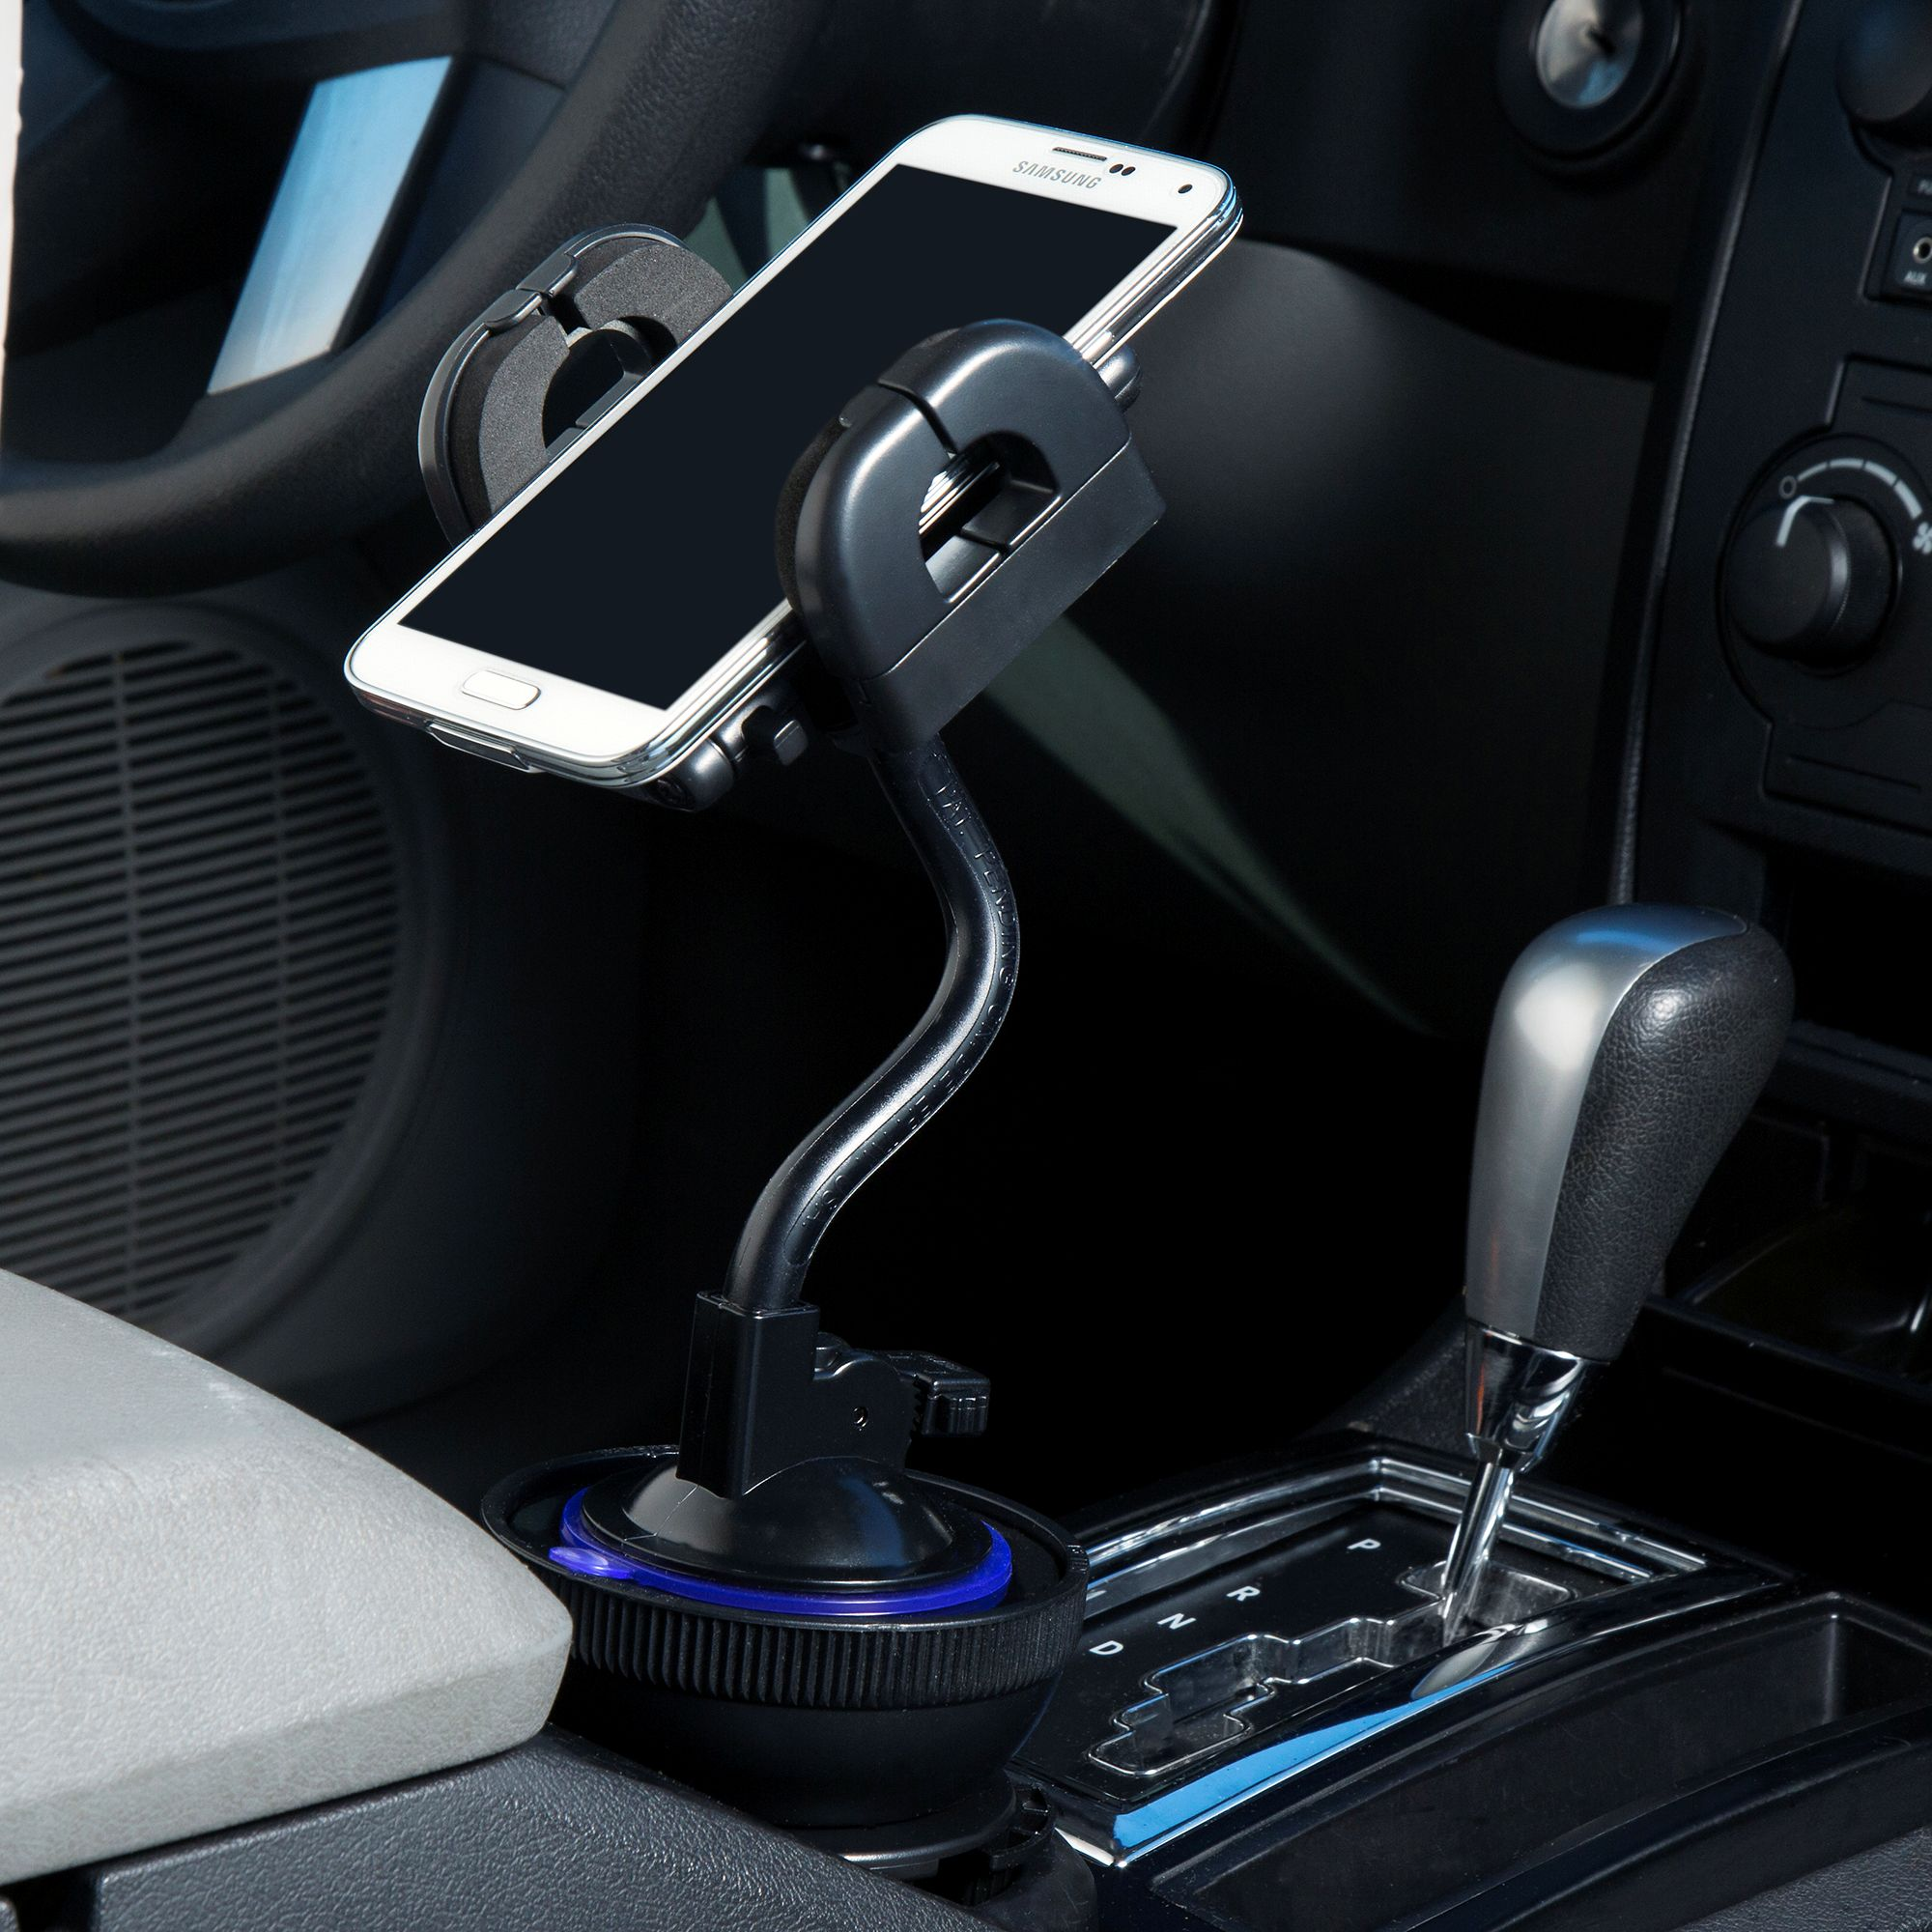 Unique Auto Cupholder and Suction Windshield Dual Purpose Mounting System for Magellan Maestro 3200 - Flexible Holder System Includes Two Mount Options